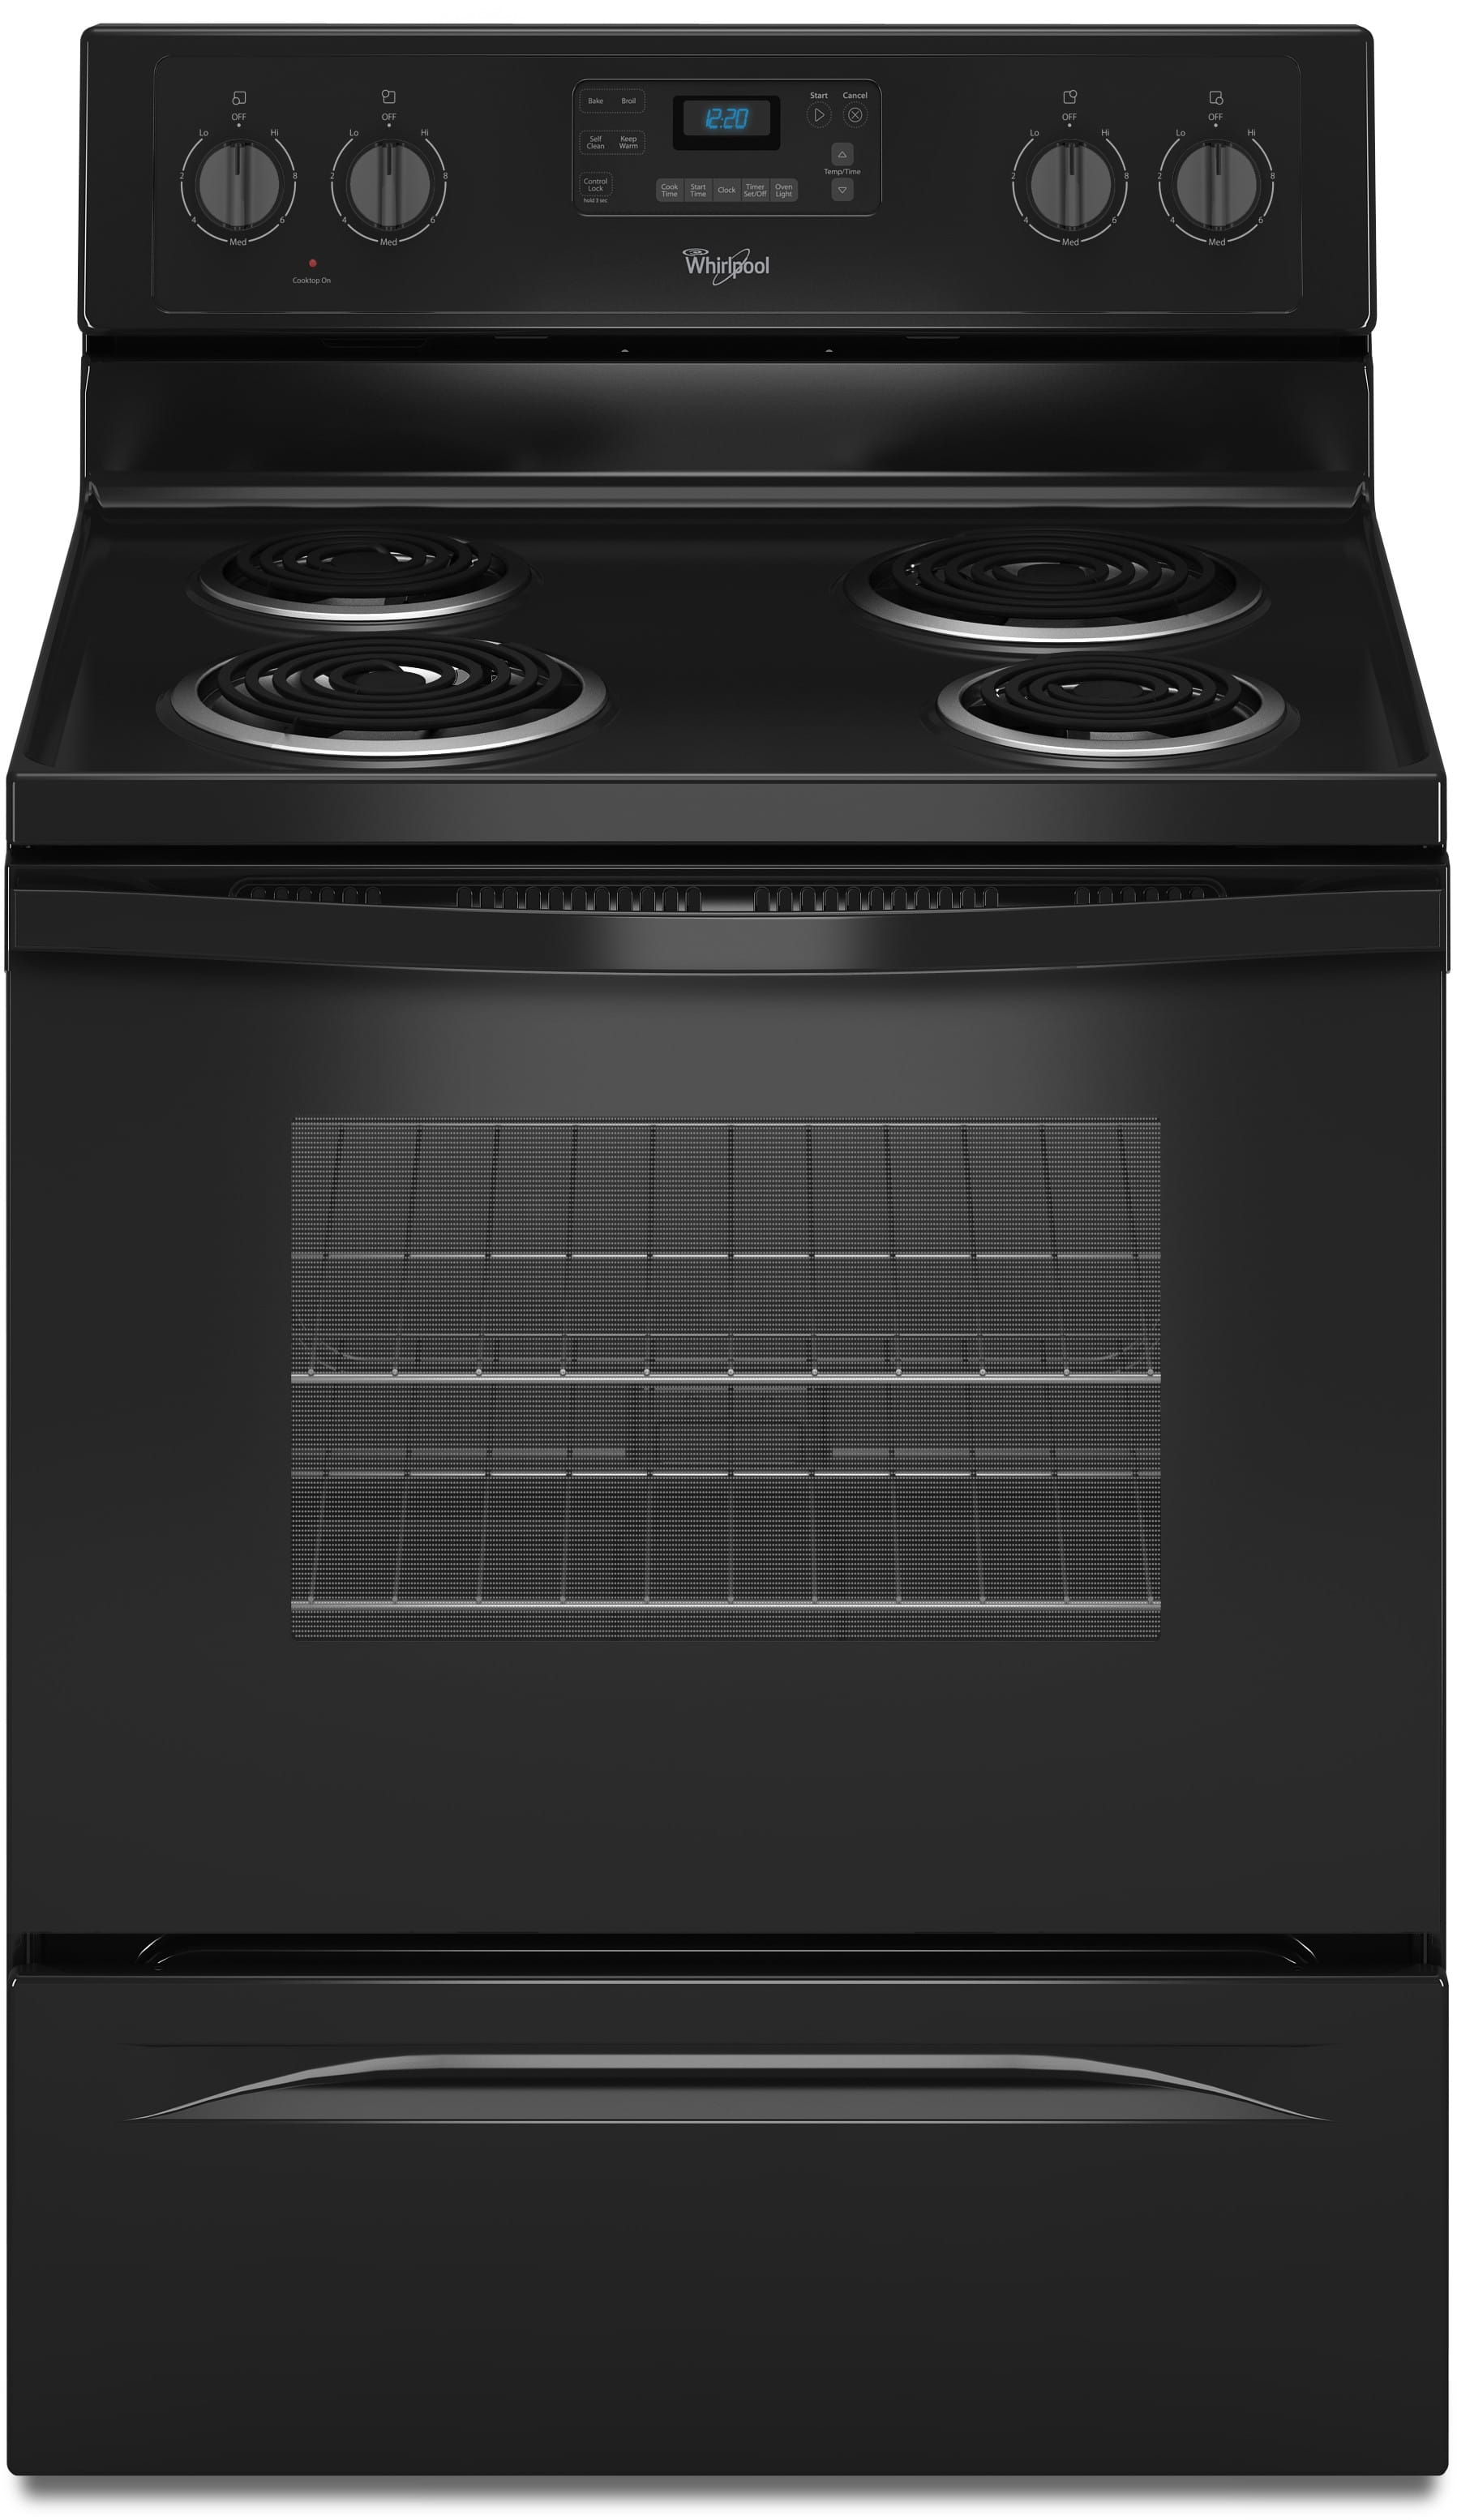 Whirlpool Wfc310s0eb 30 Inch Freestanding Electric Range